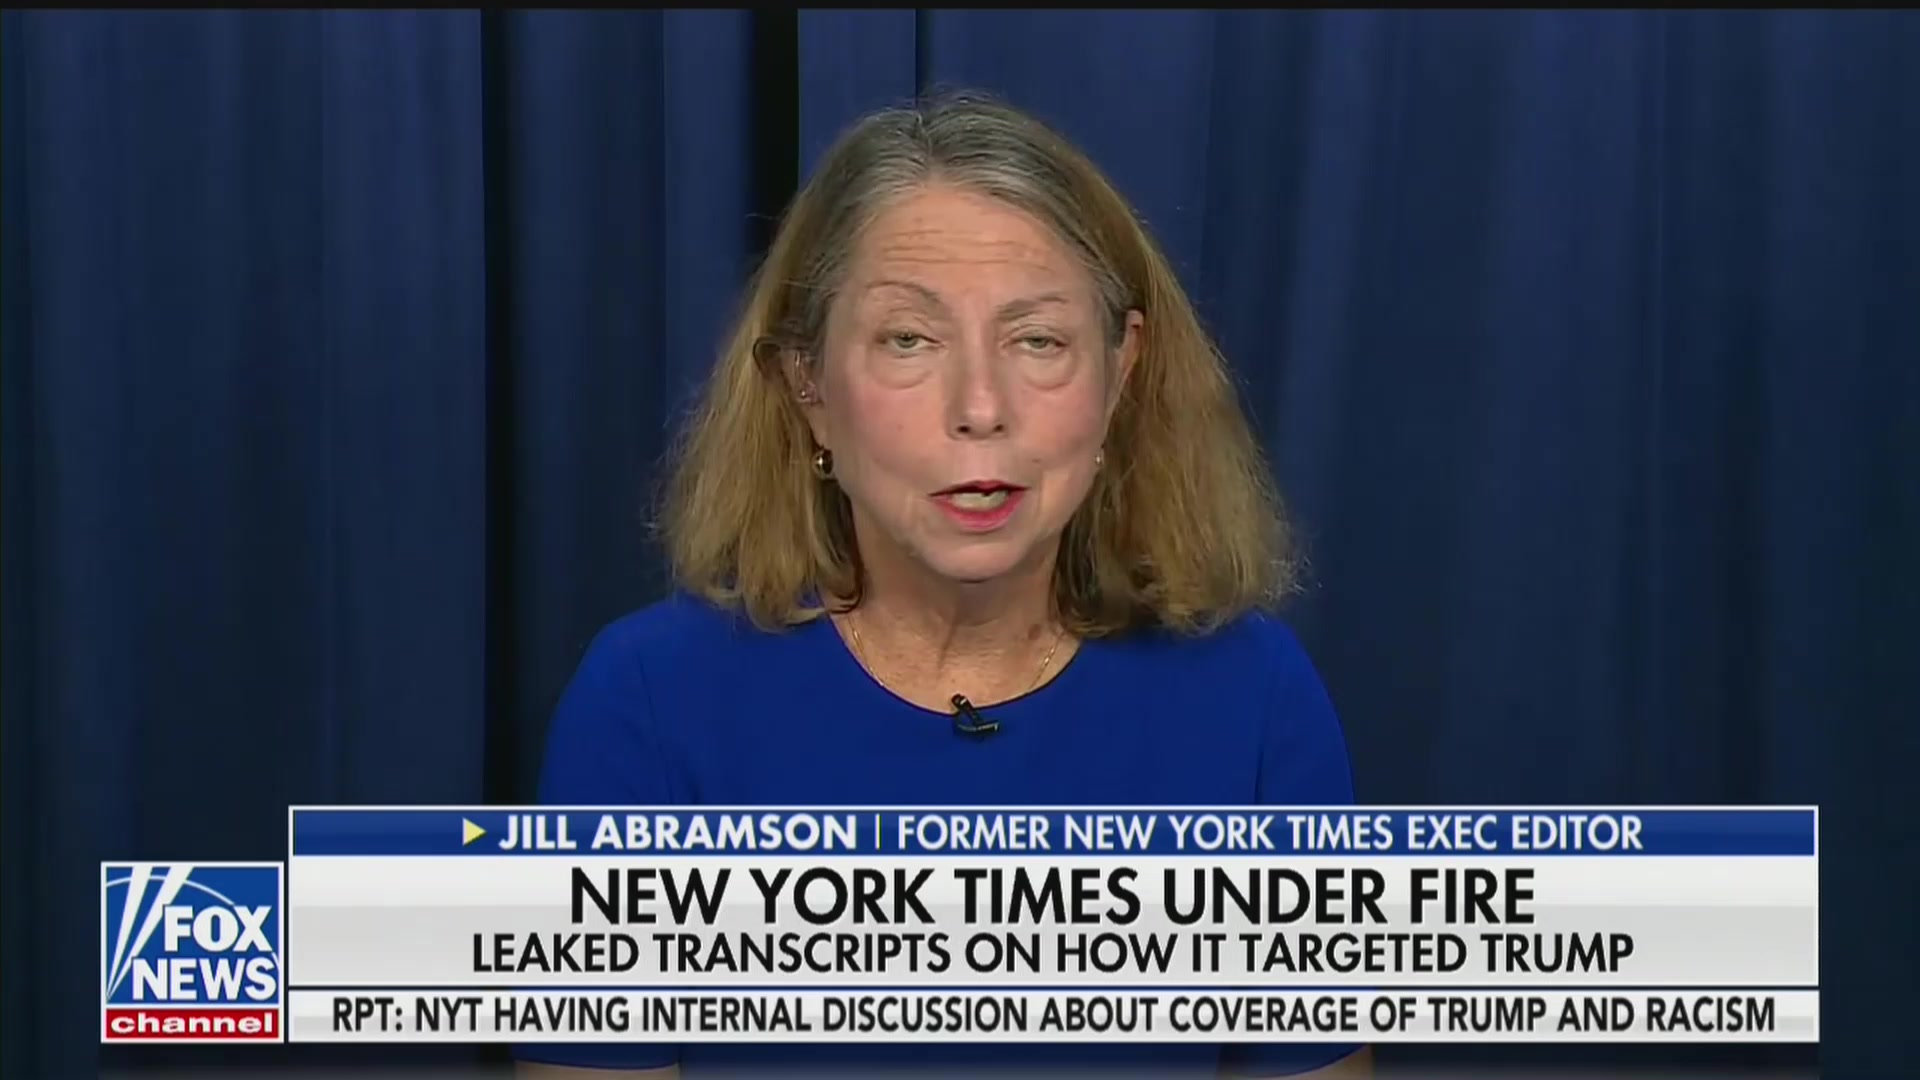 Fox News' Attempt to Get Jill Abramson to Call the New York Times 'Biased' Backfires Spectacularly